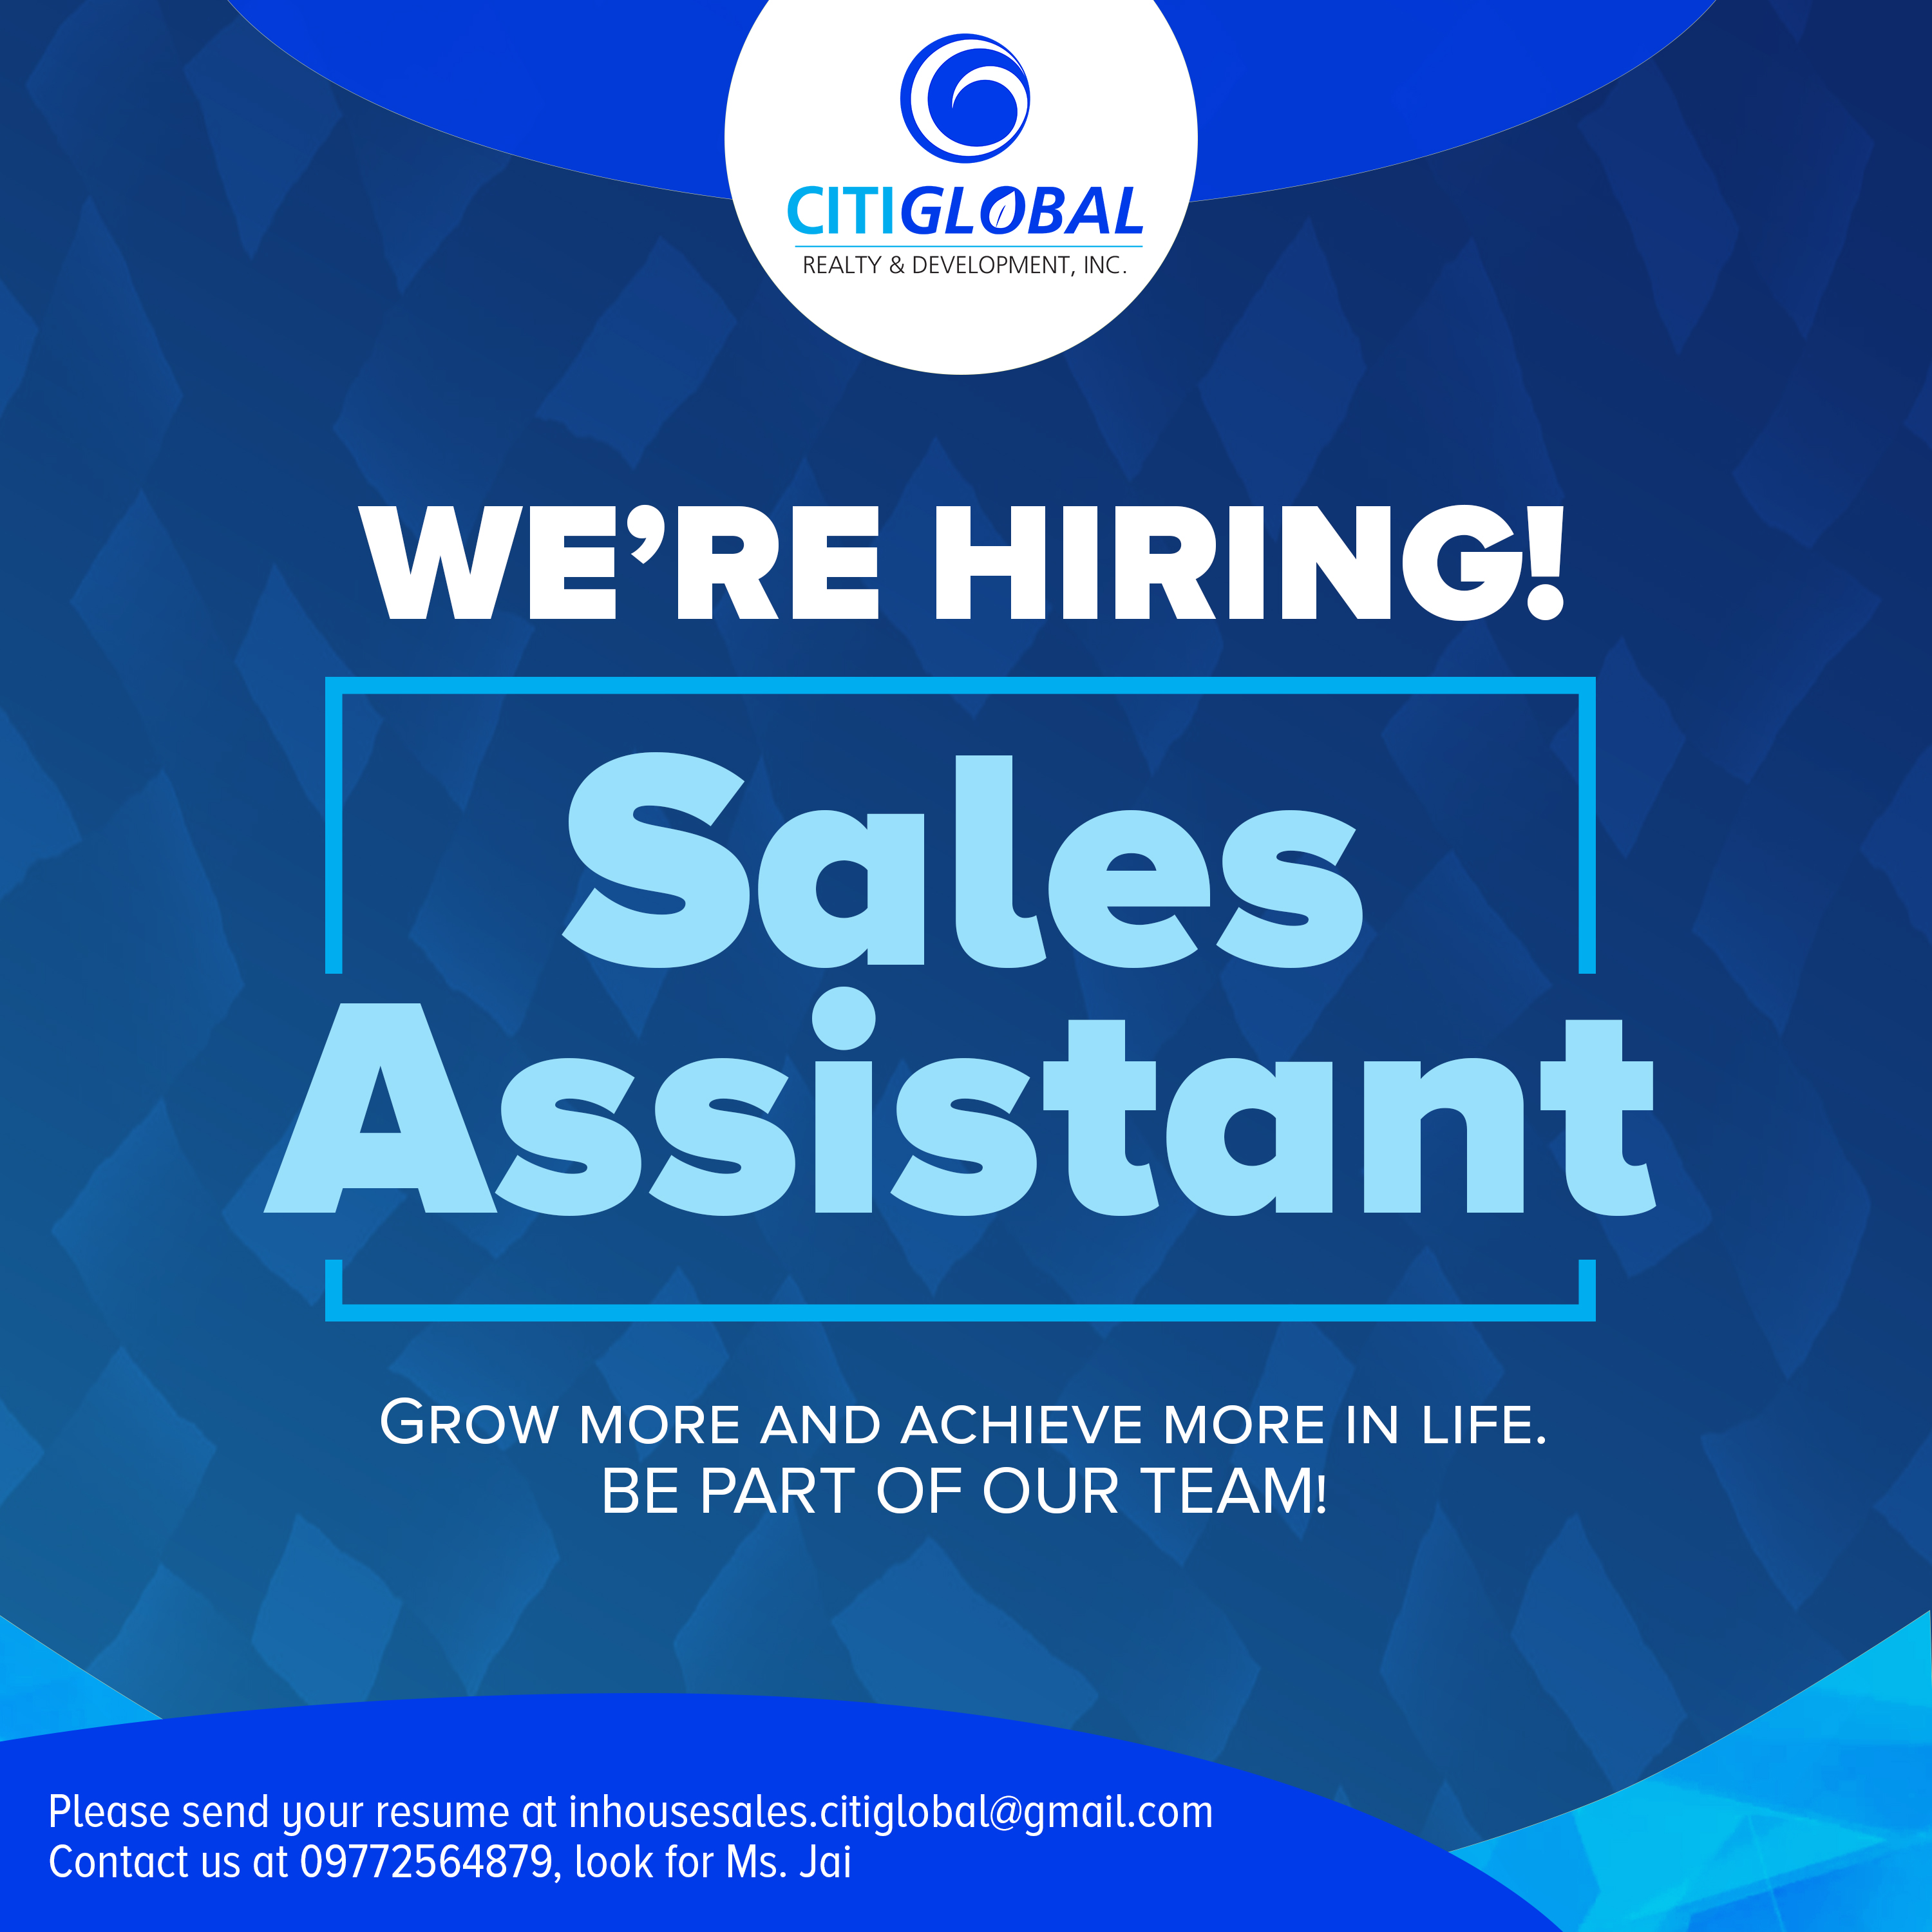 Sales Assistant from Inhouse sales